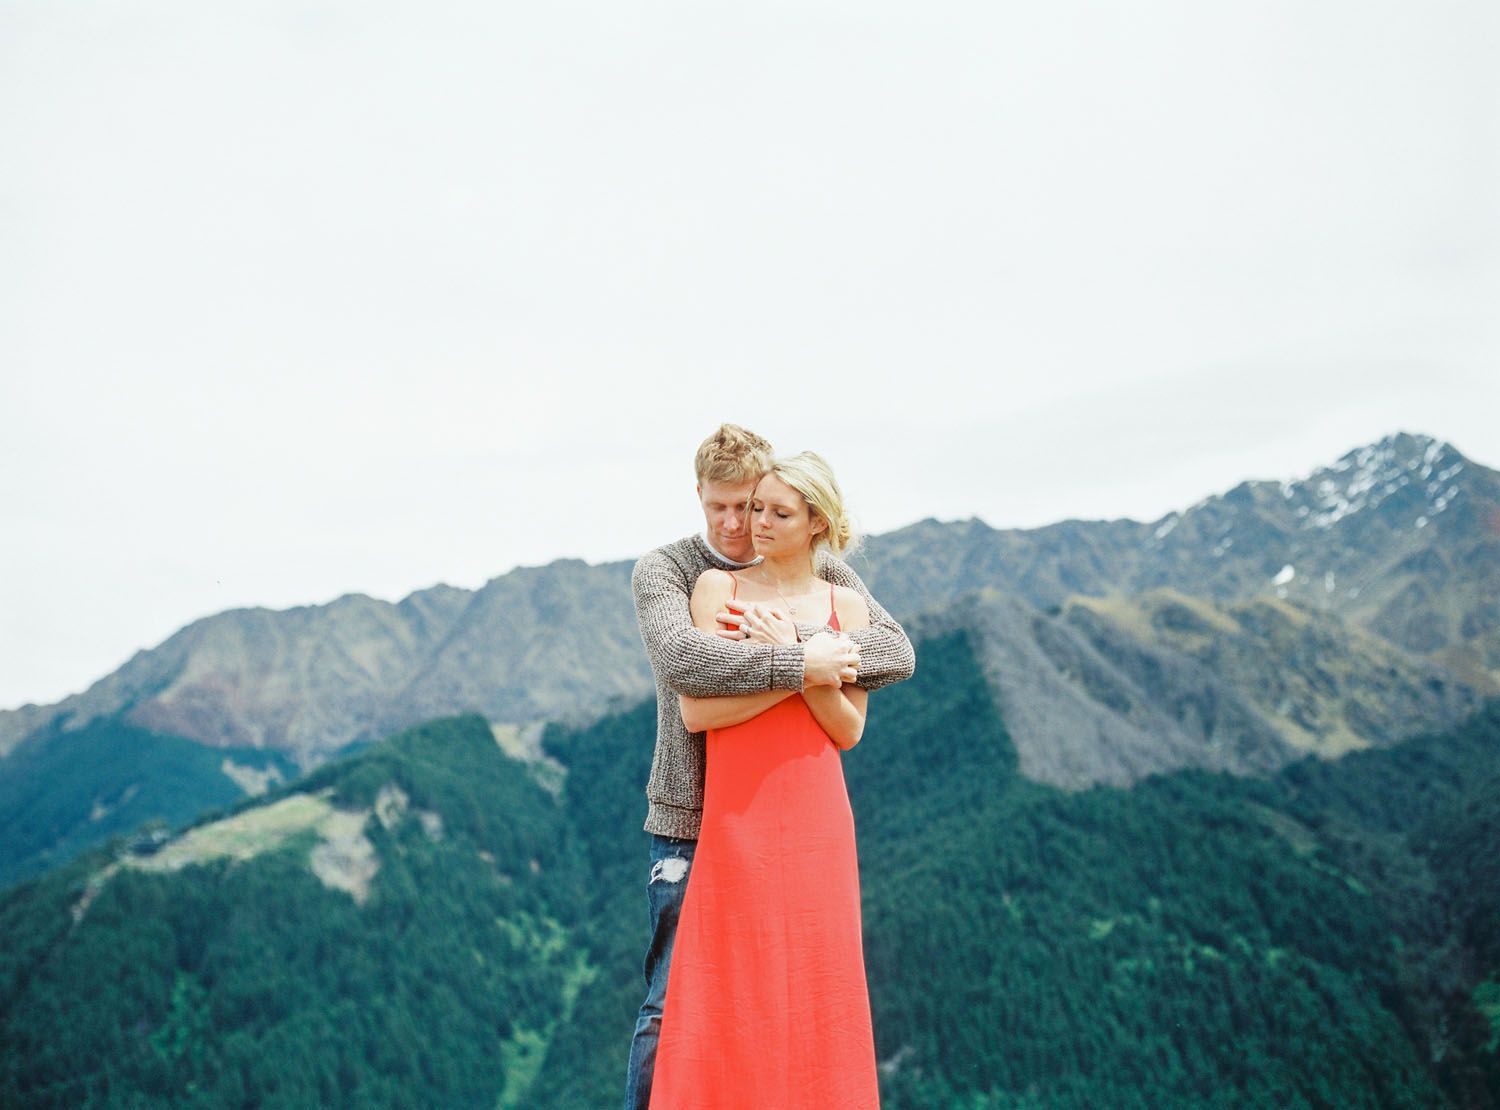 Red dress girl for engagement session in New Zealand